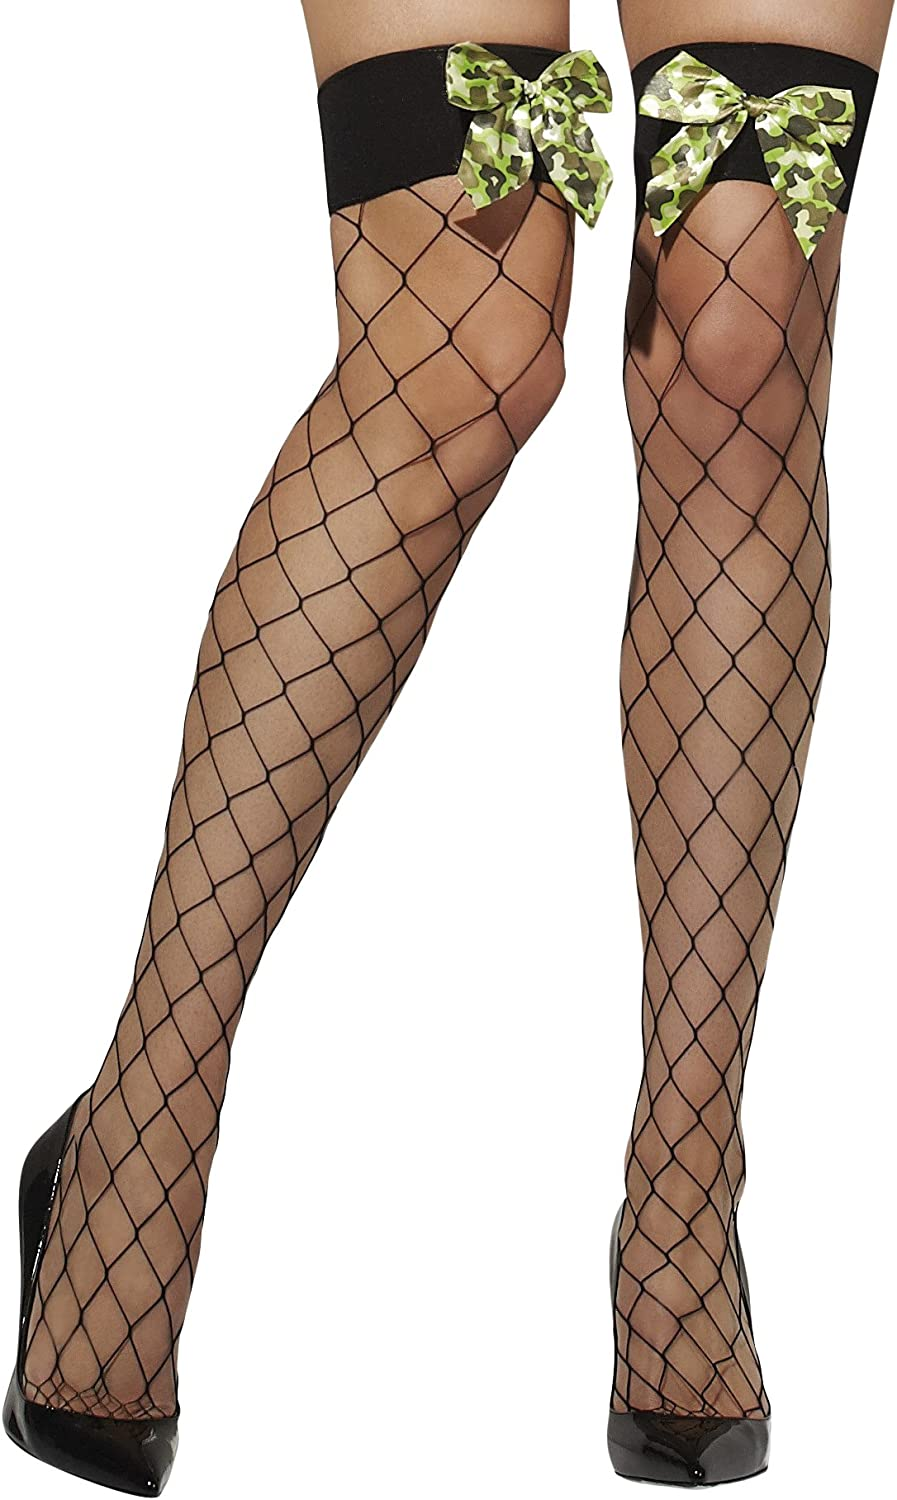 Fever Women's Diamond Net Hold-Ups with Box Display Camo Popular products In online shop Bows